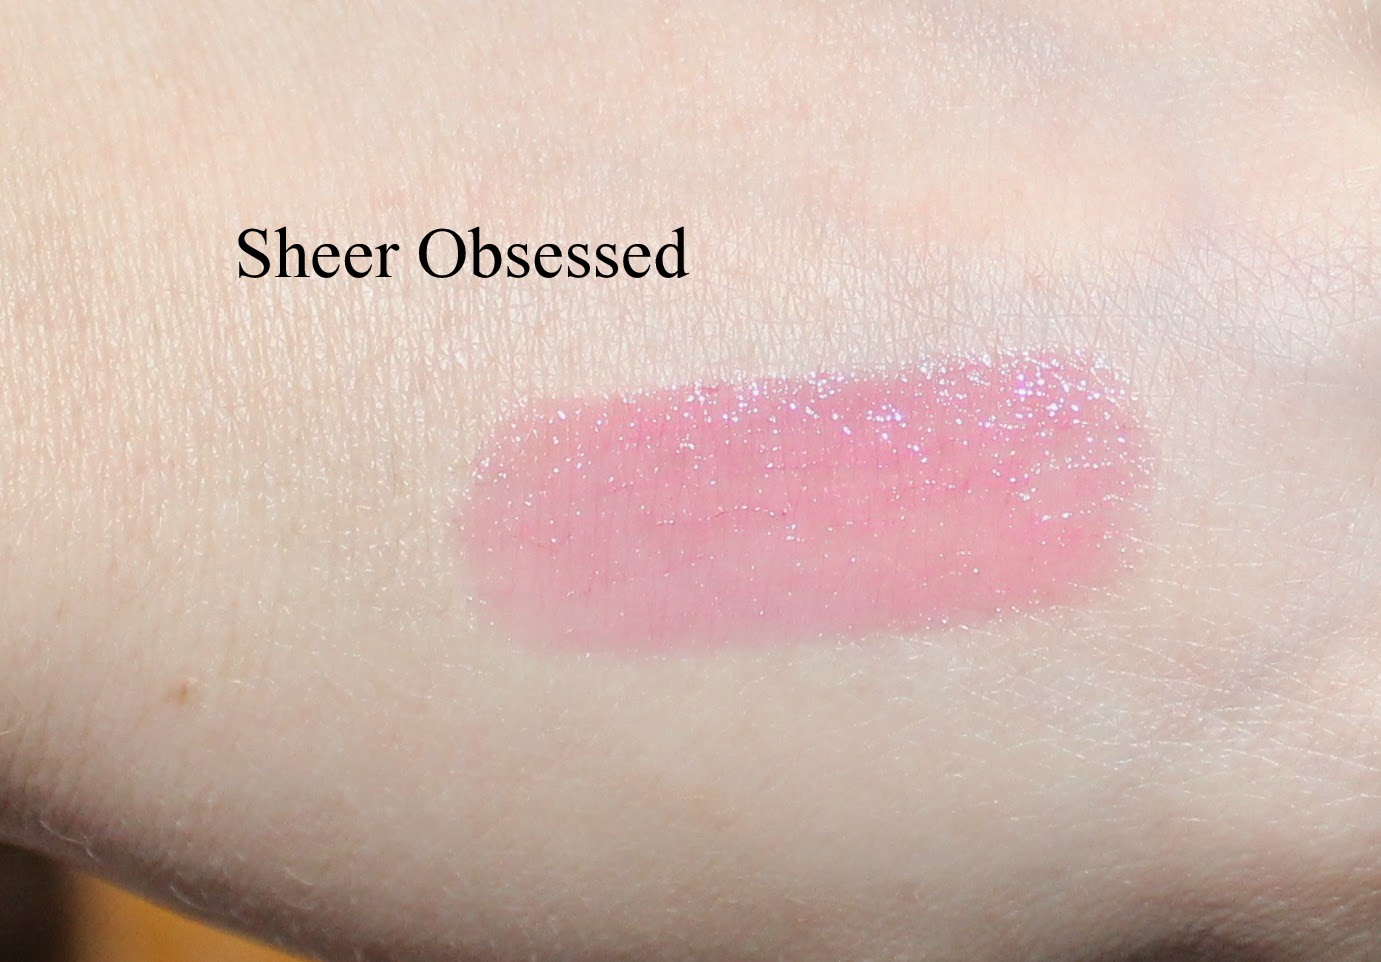 Urban Decay Sheer Revolution Lipstick in Sheer Obsessed Swatch